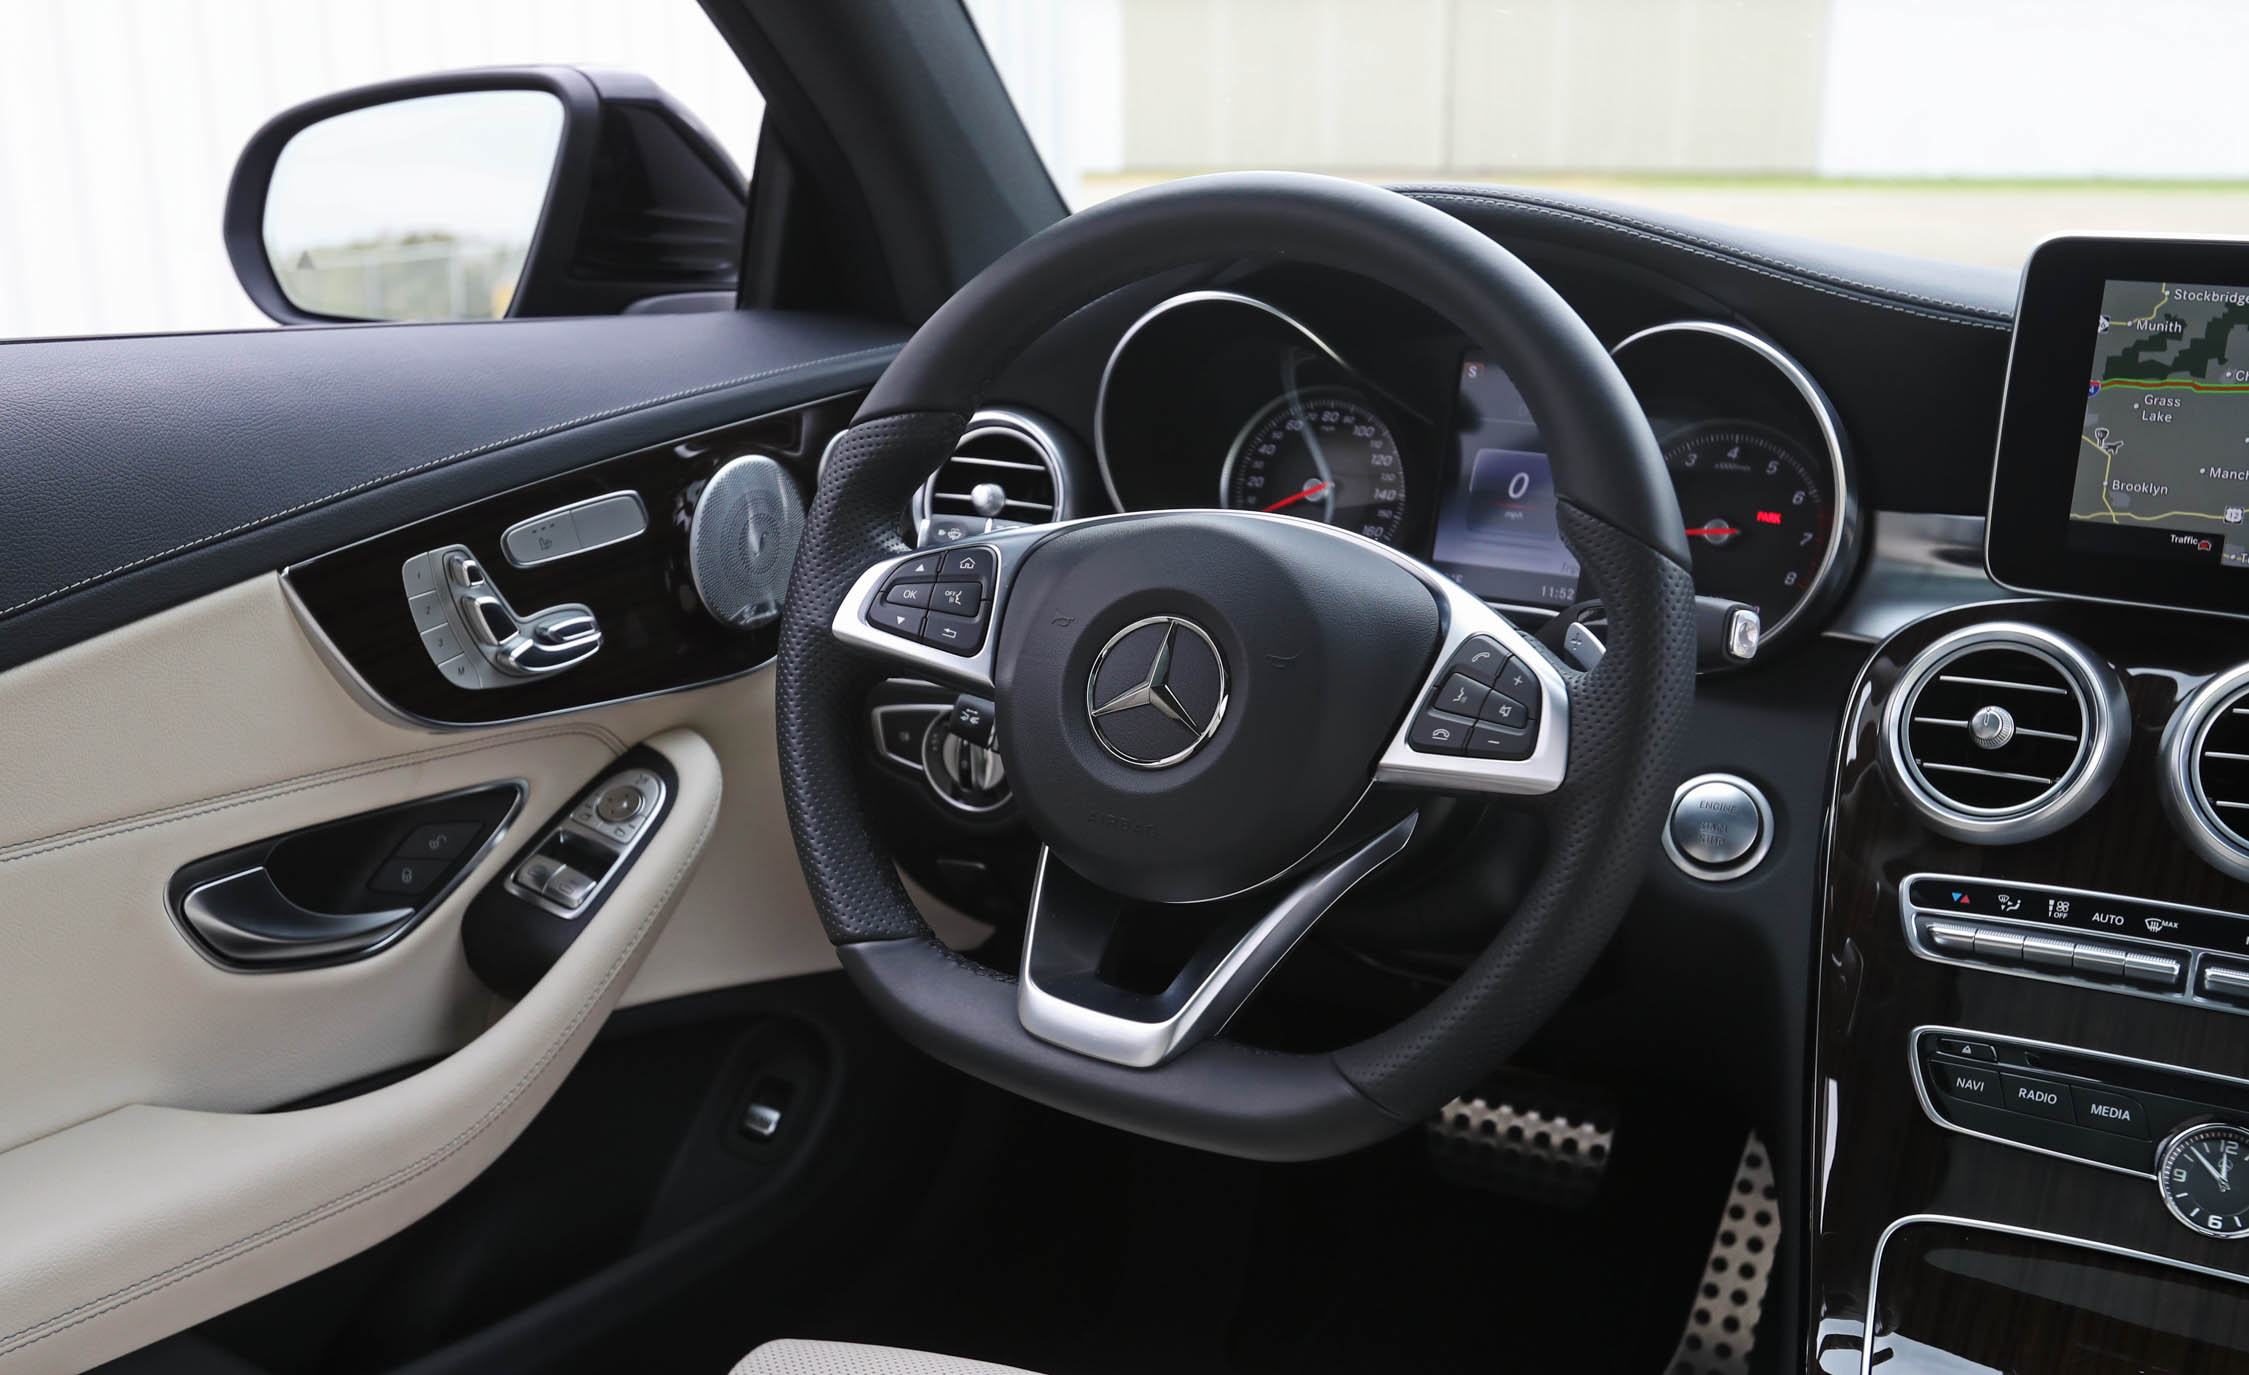 2017 Mercedes Benz C300 4MATIC Coupe Interior View Steering Wheel (Photo 35 of 44)